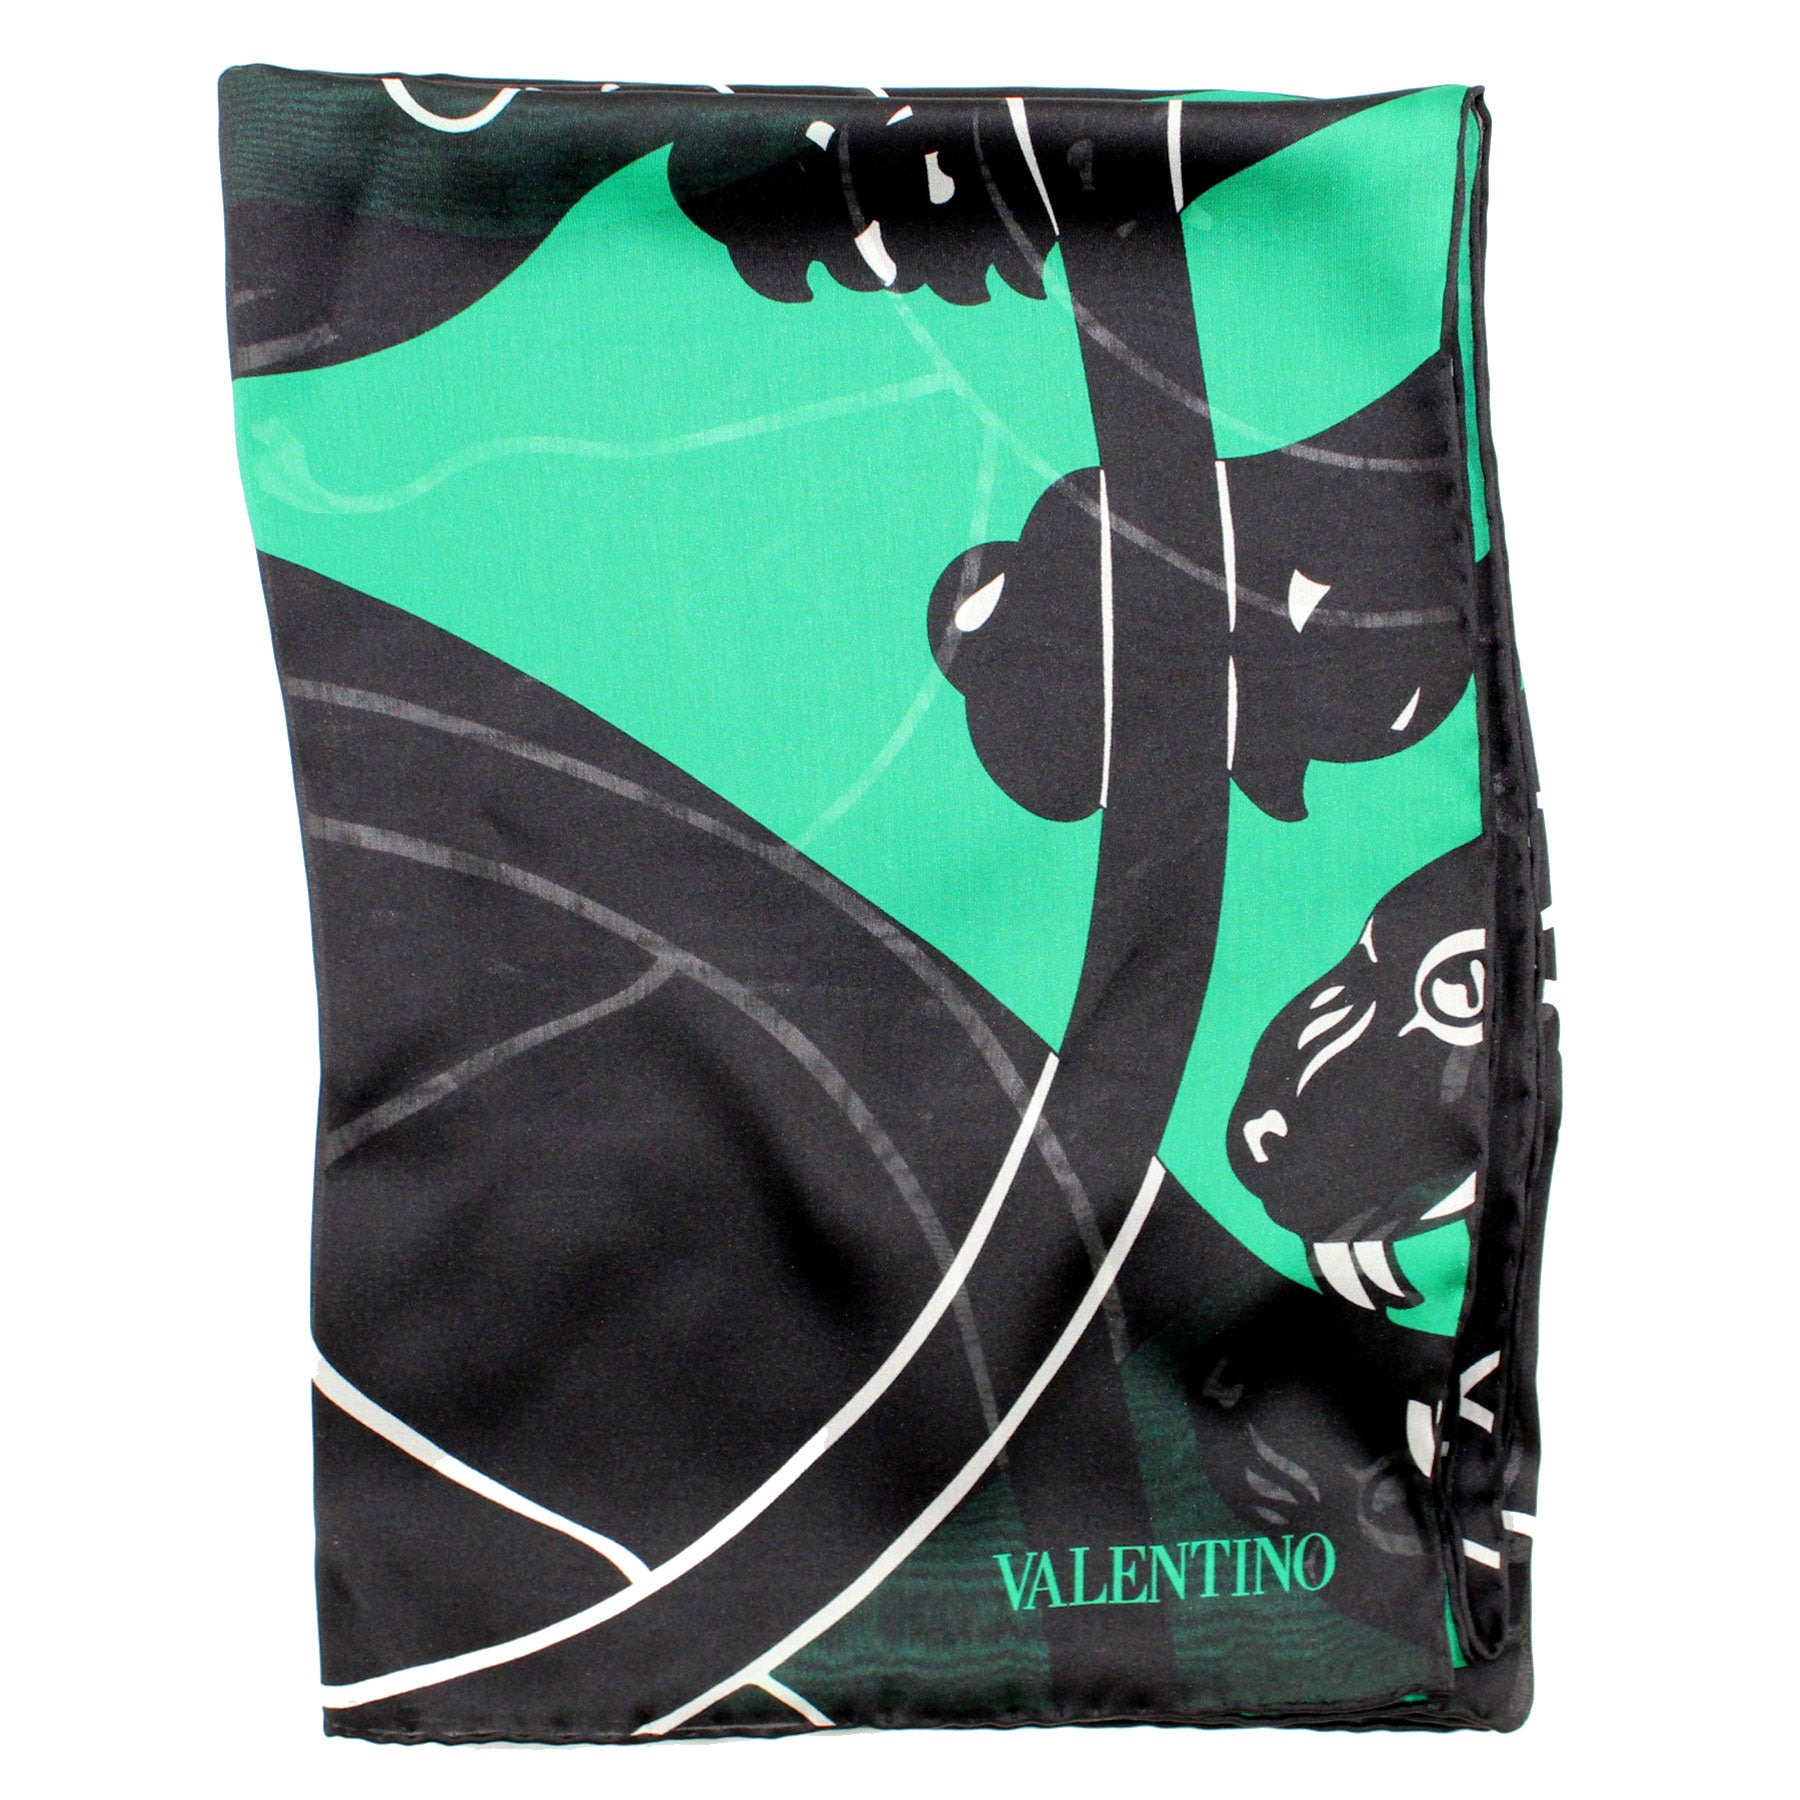 Valentino Scarf Black Green Panther - Chiffon Silk Women Shawl